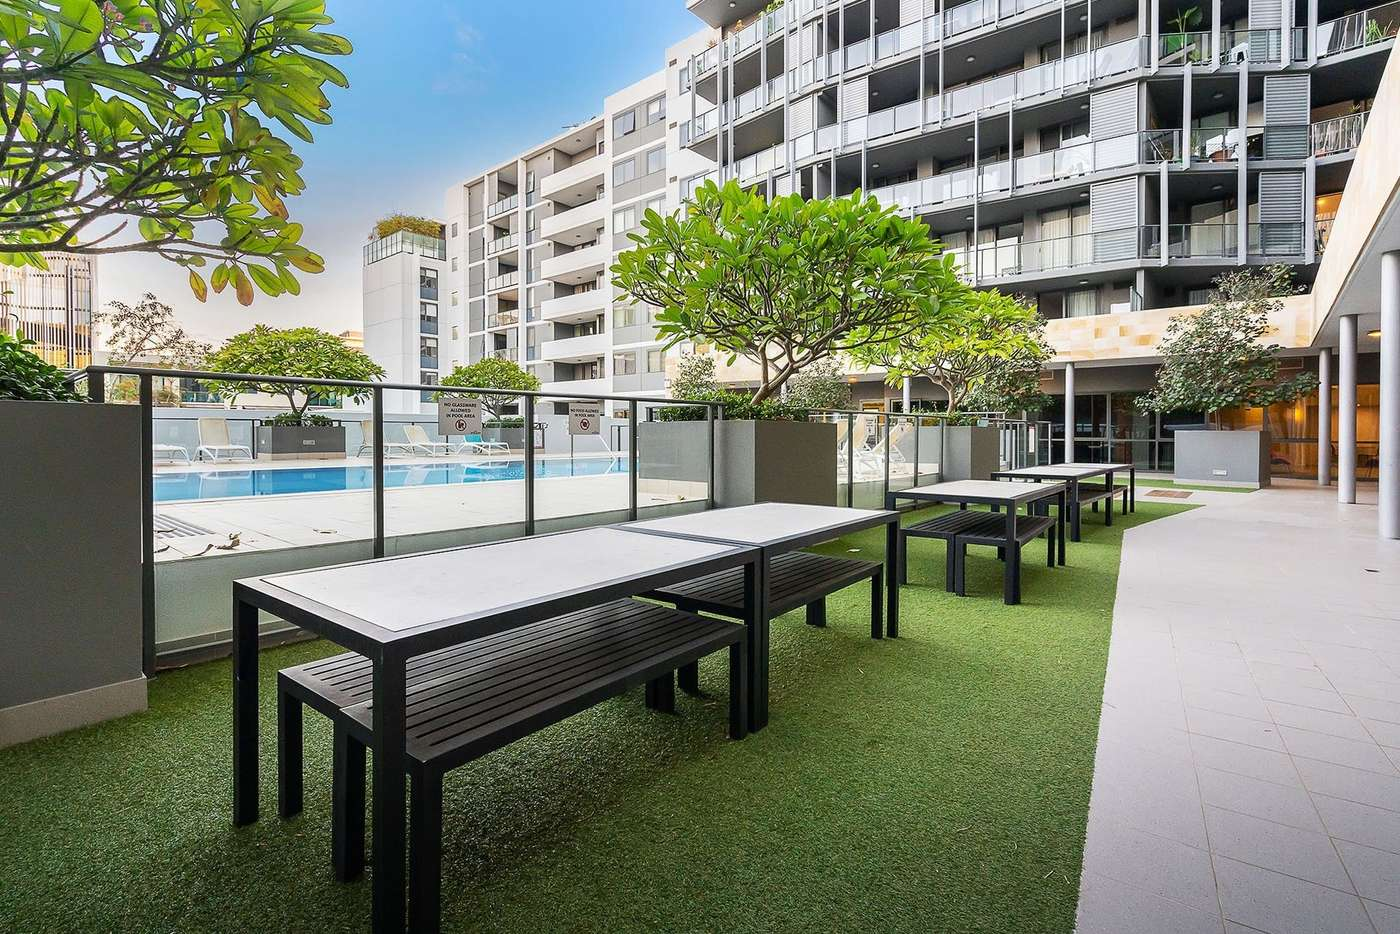 Main view of Homely apartment listing, 316/26 Hood Street, Subiaco WA 6008